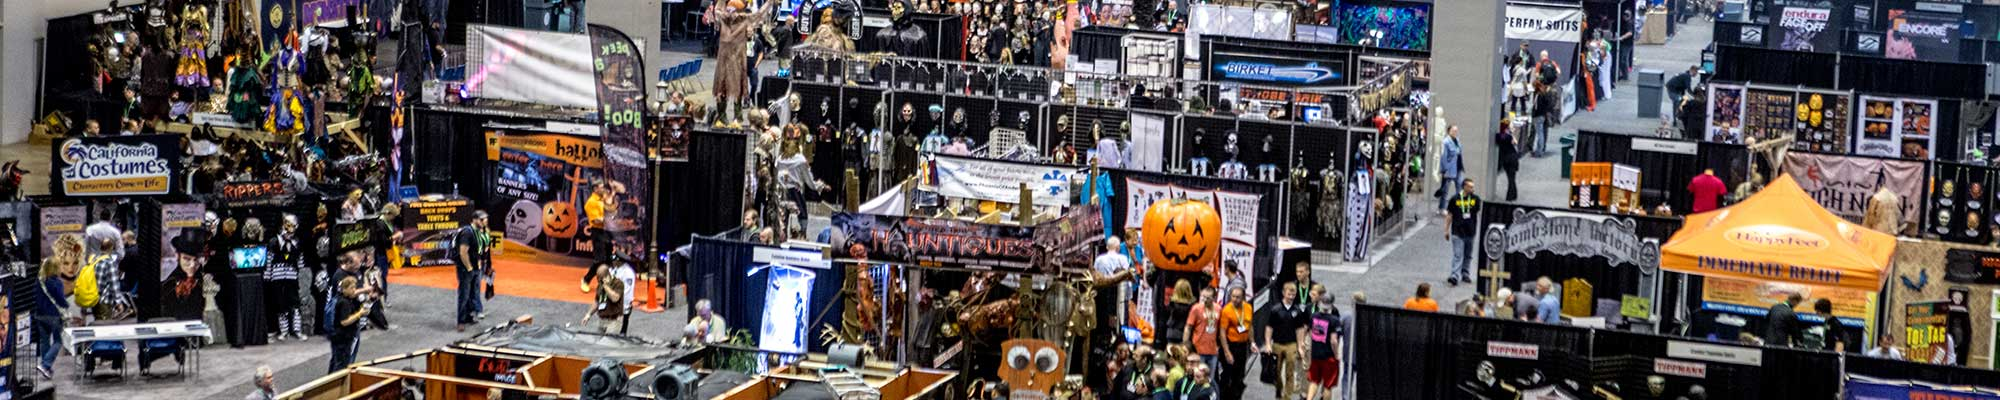 Trade Show Booth Exhibitors : New for exhibitor social on the trade show floor